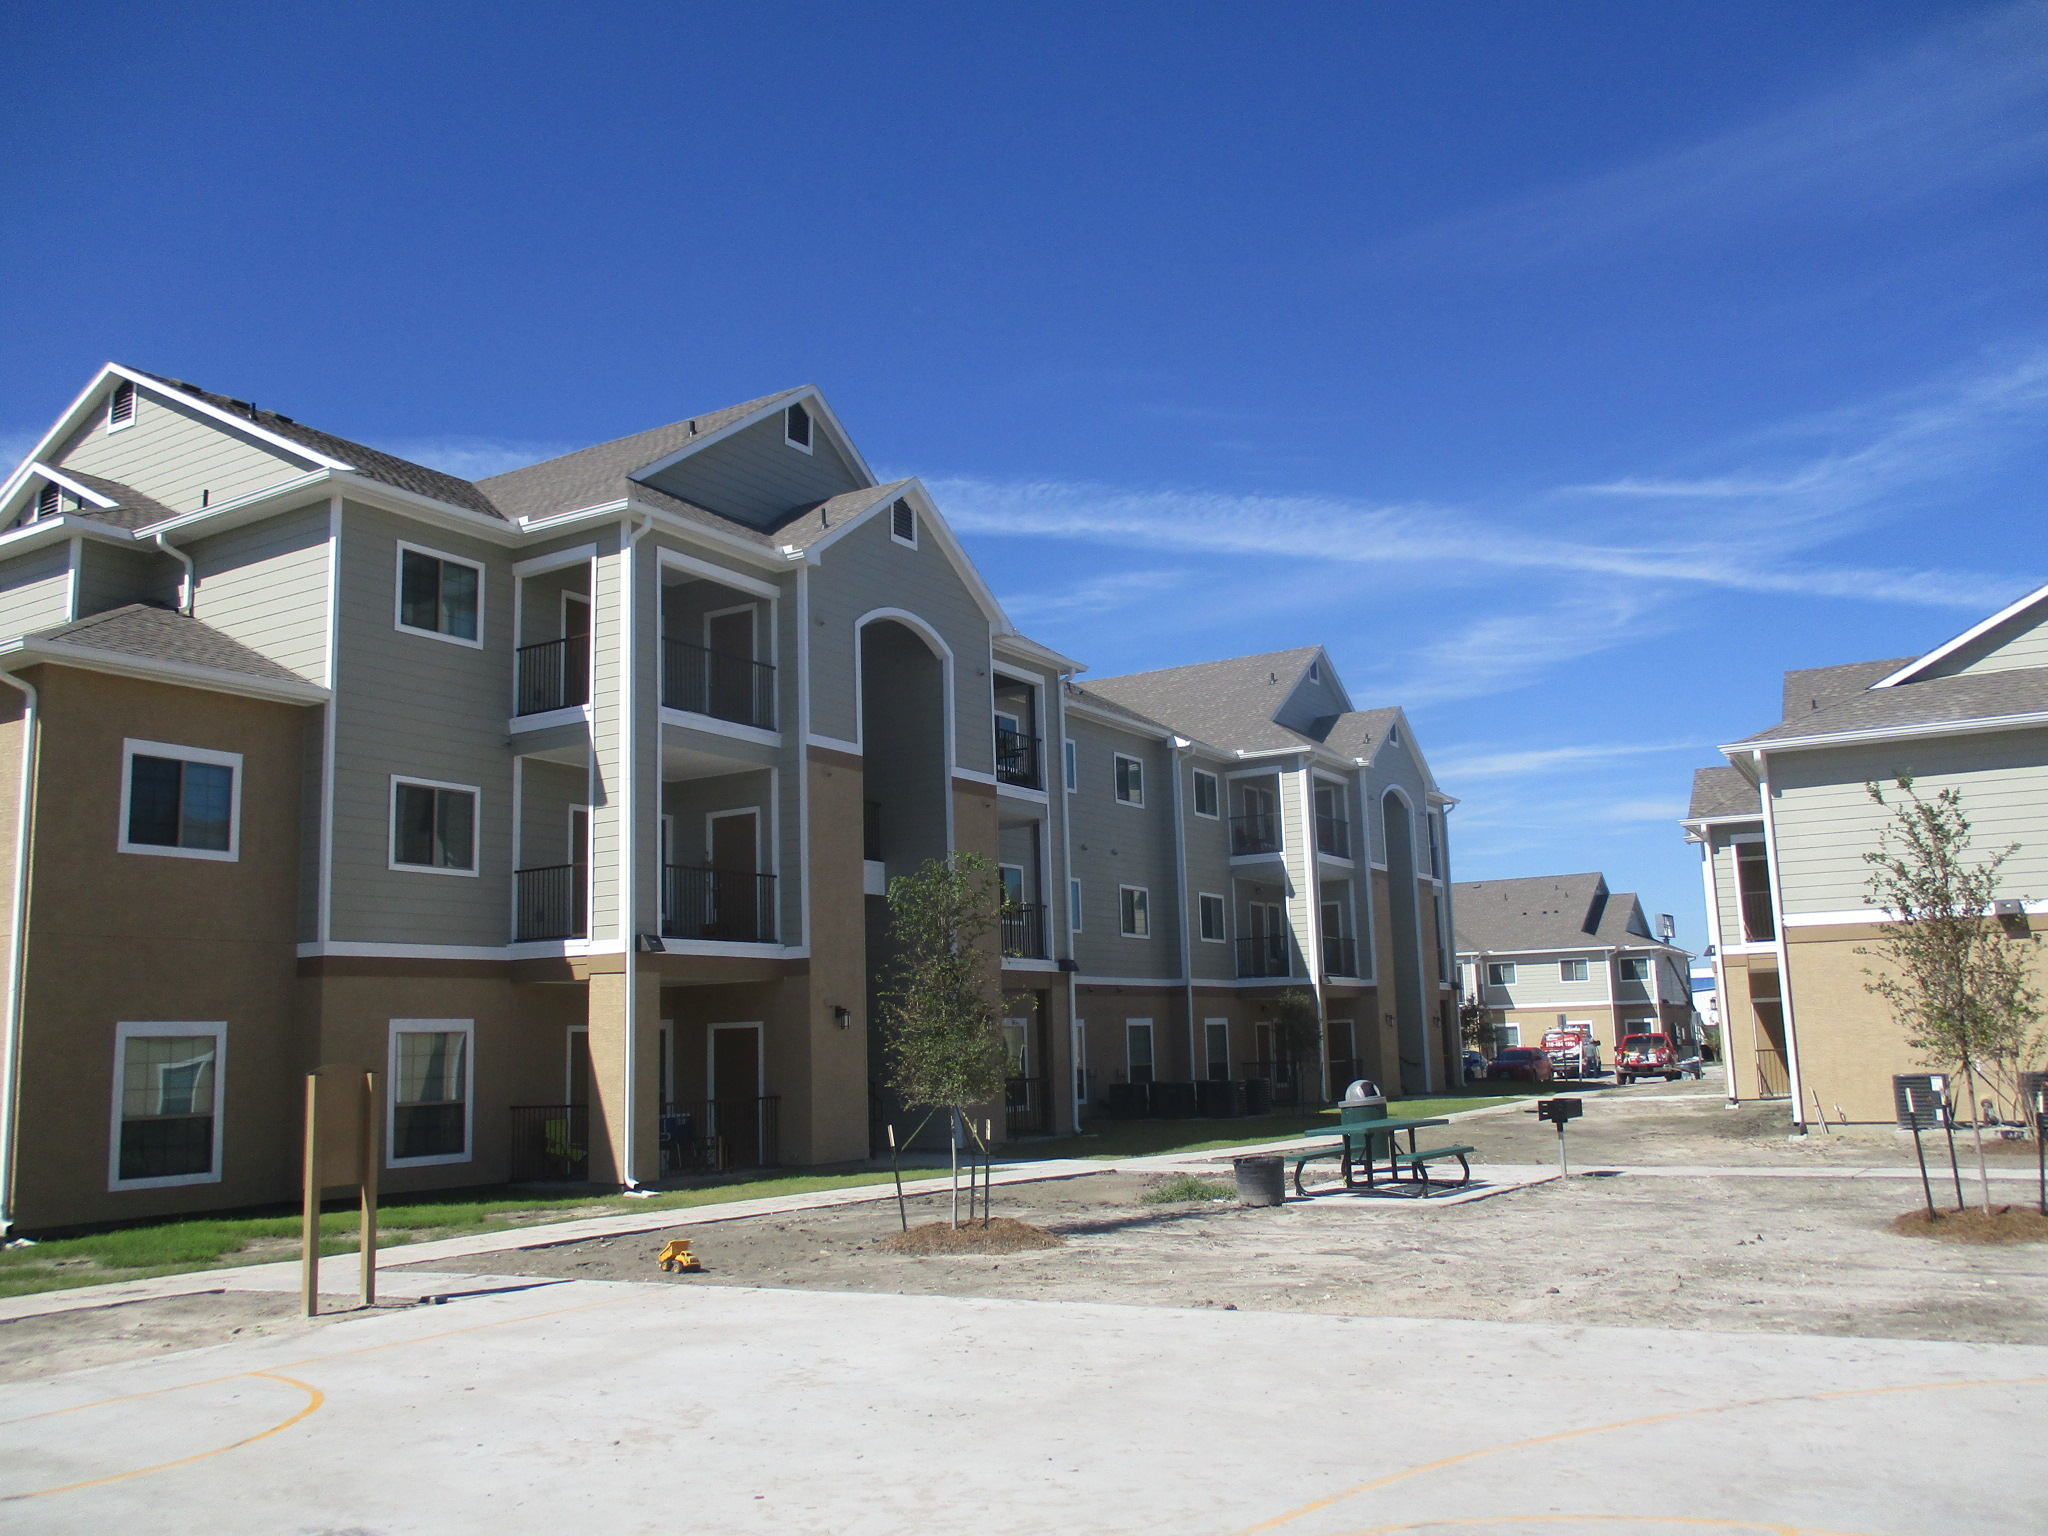 Image of Lexington Manor Apartments in Corpus Christi, Texas